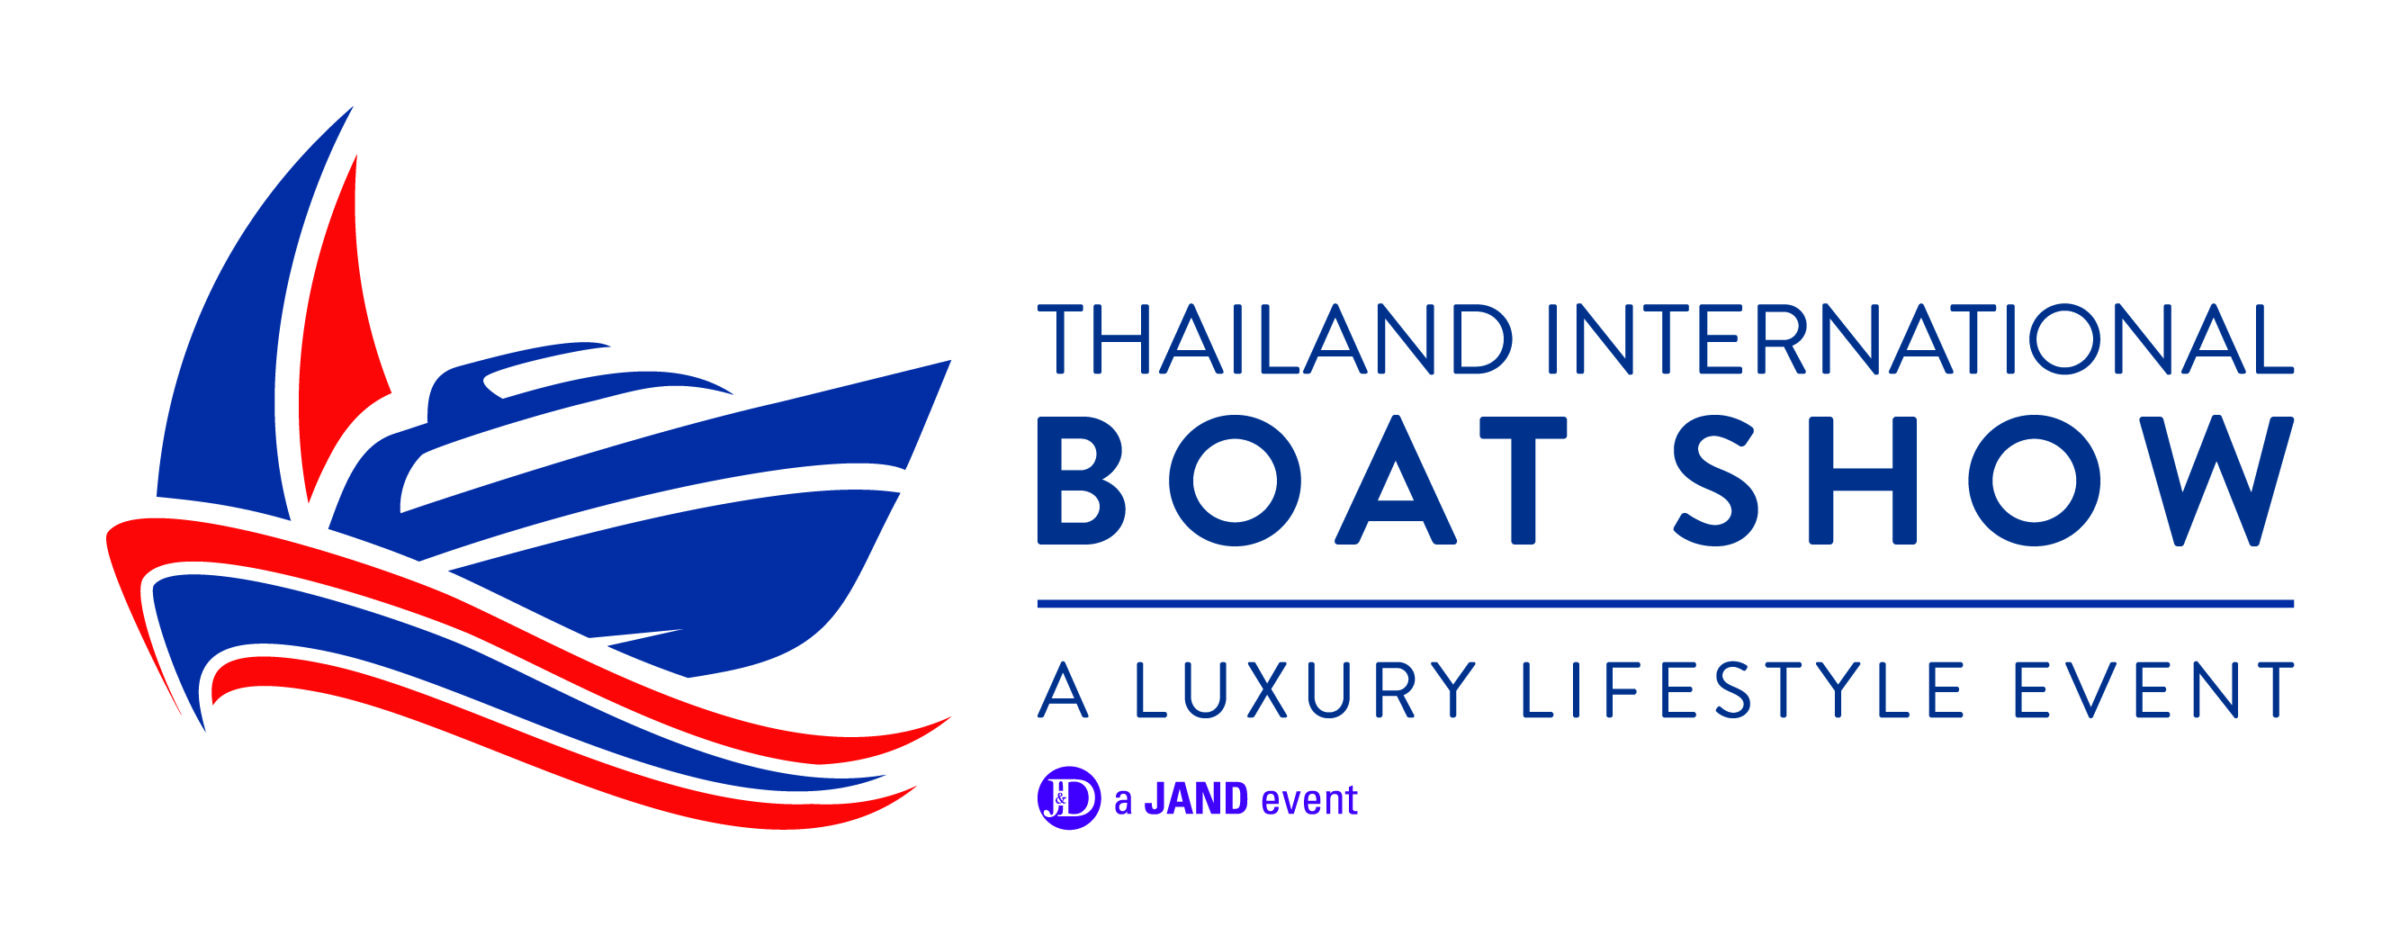 Phuket, the hub of the next global superyacht destination | News by Thaiger